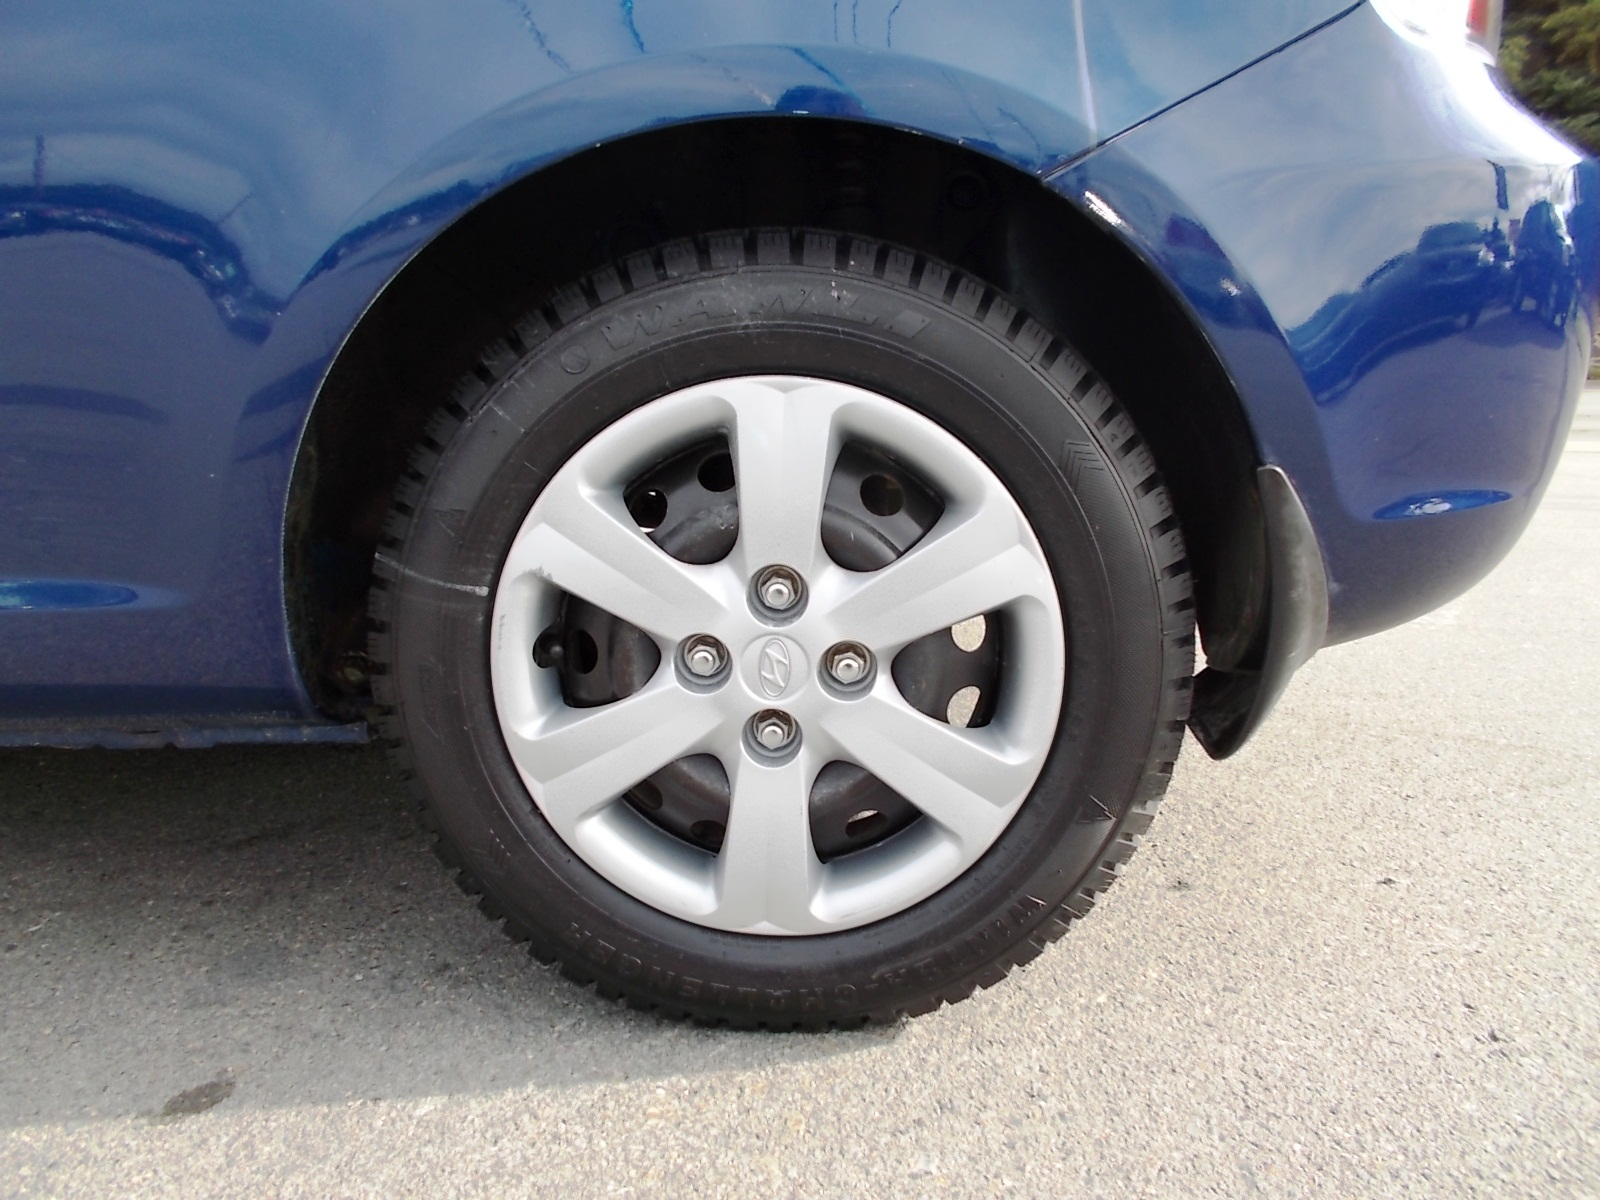 Service manual 2013 Hyundai Accent Rear Wheel Removal